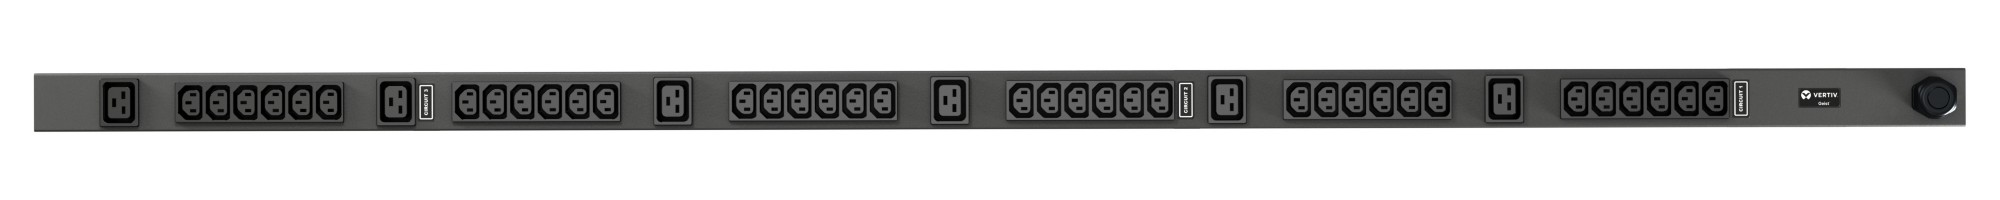 VERTIV VP7557 GEIST RPDU, BASIC, 0U, INPUT IEC60309 230/400V 3X16A, OUTPUTS (36)C13 | (6)C19 POWER DISTRIBUTION UNIT (PDU) BLACK 42 AC OUTLET(S)